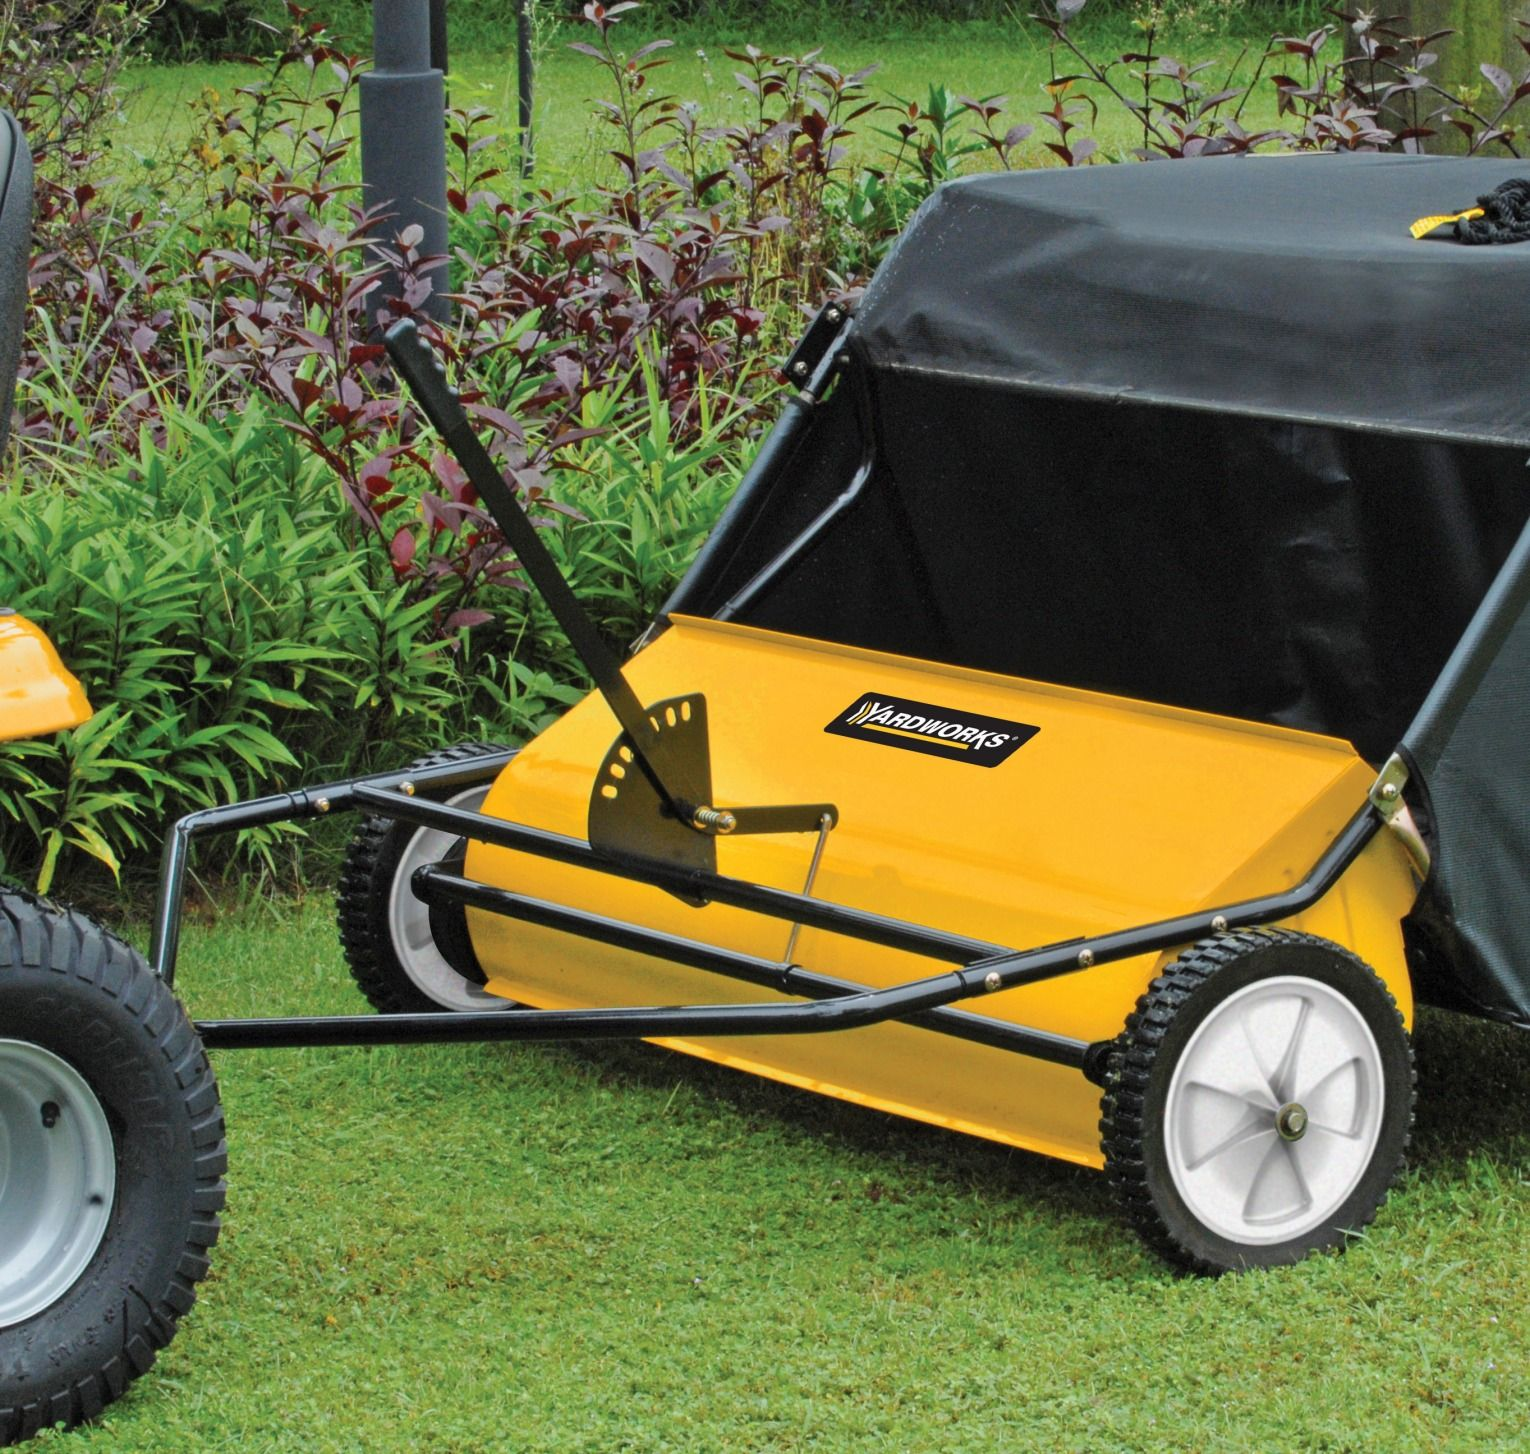 Keep Your Lawn In Line With A 42 Tow Behind Lawn Sweeper When Used With A Garden Tractor This Contraption Can Lawn Sweepers Landscaping Tools Outdoor Oasis